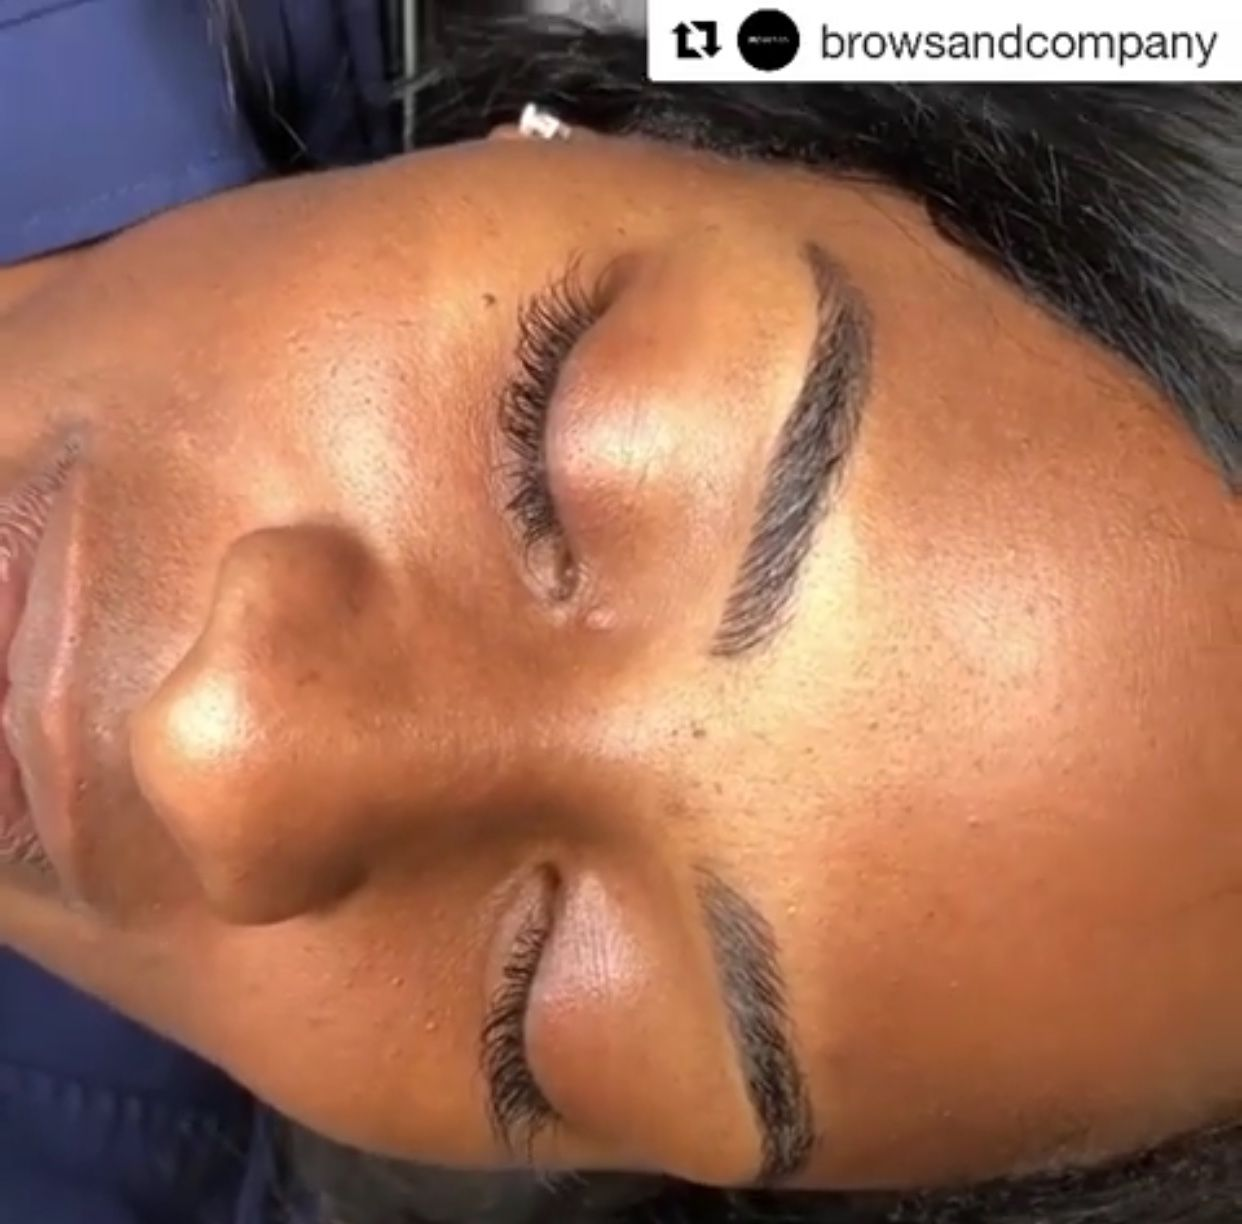 When you see brows like these in your Instagram feed